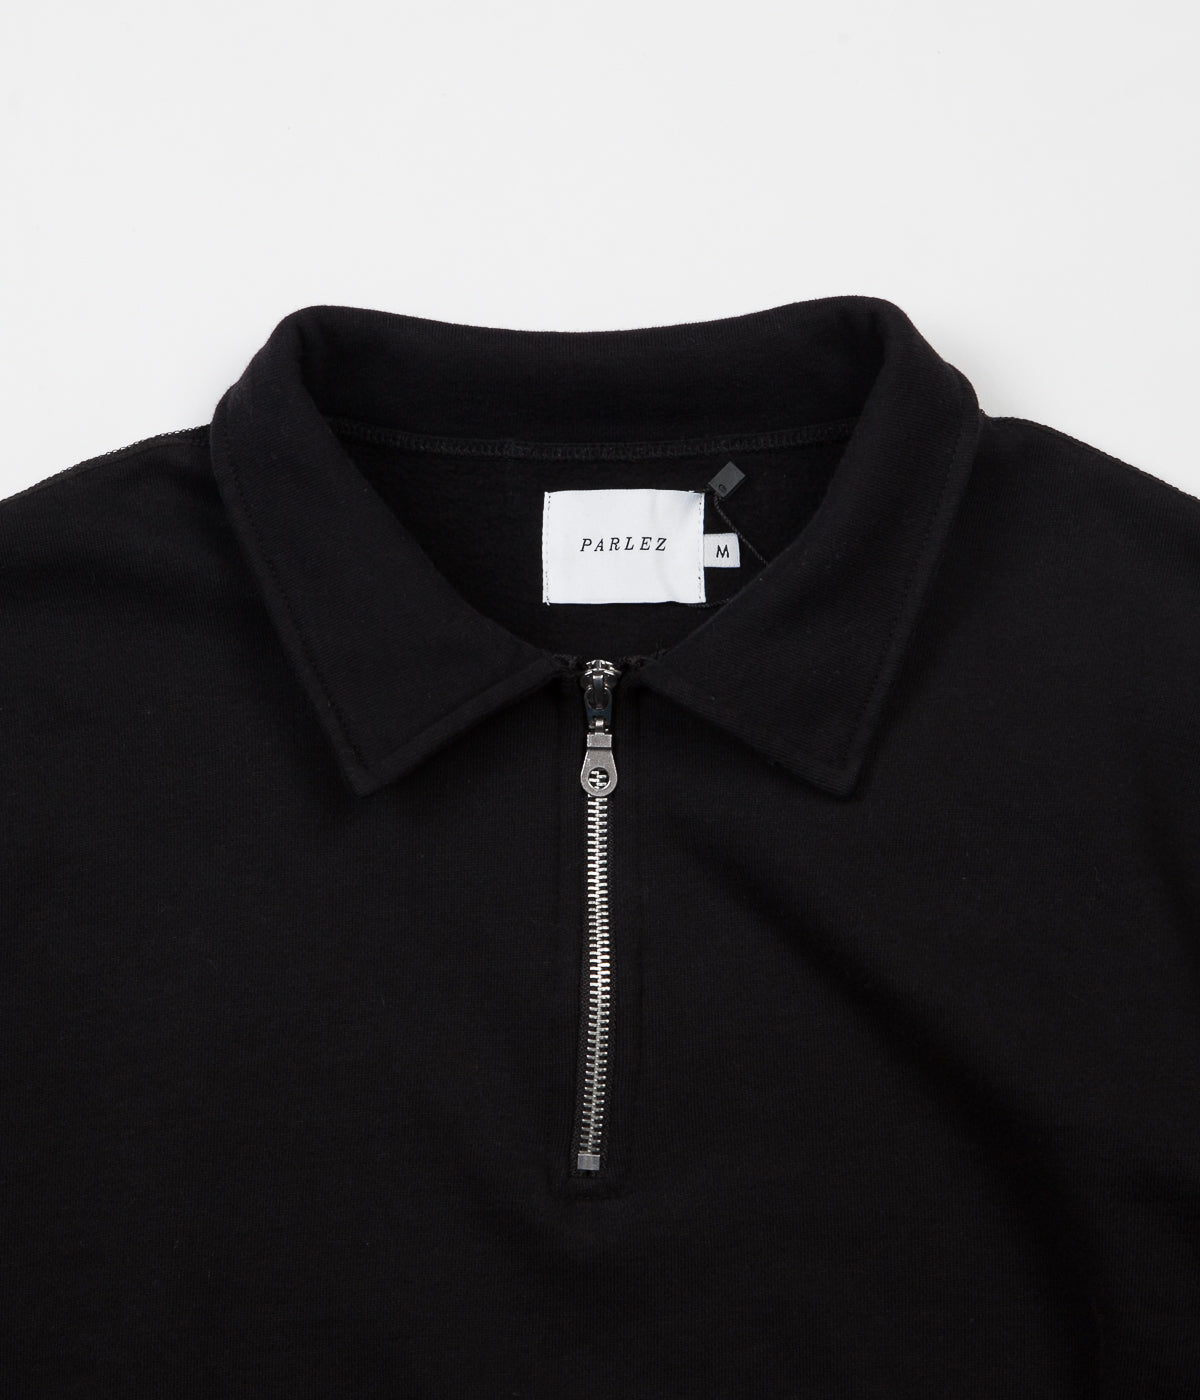 Parlez Sigurd 16oz 1/4 Zip Sweatshirt - Black